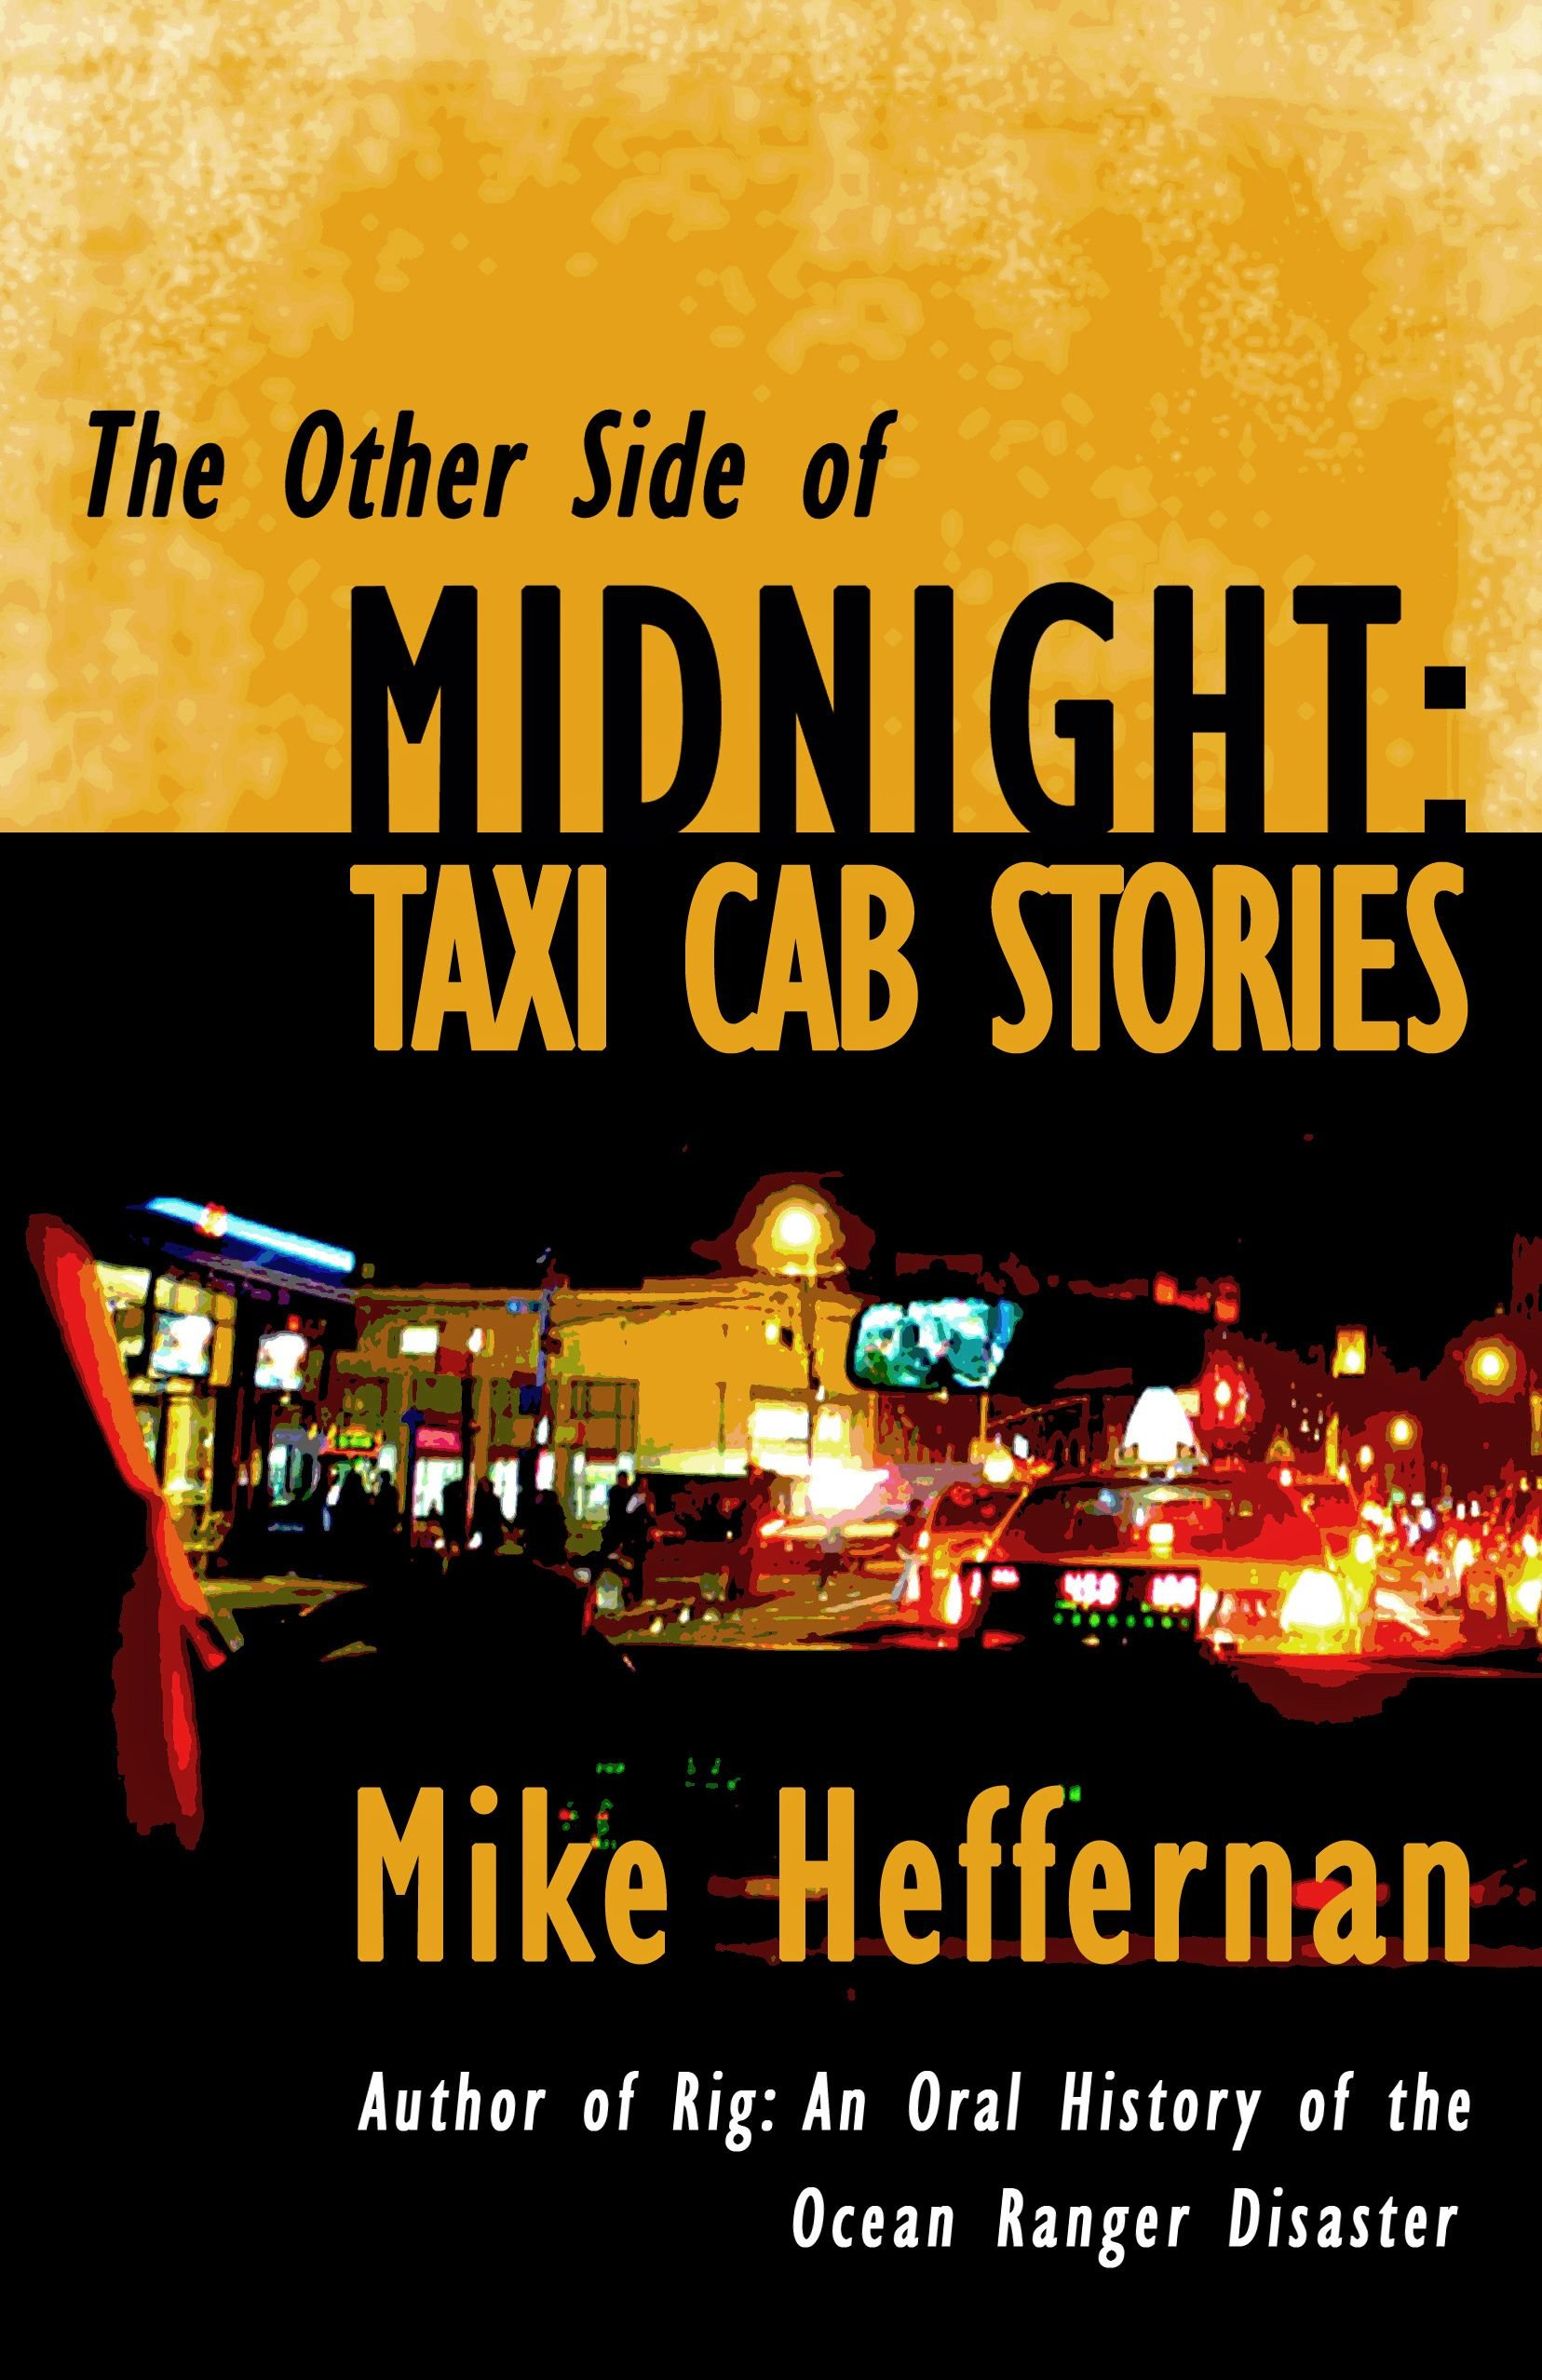 The Other Side of Midnight: Taxi Cab Stories by Mike Heffernan